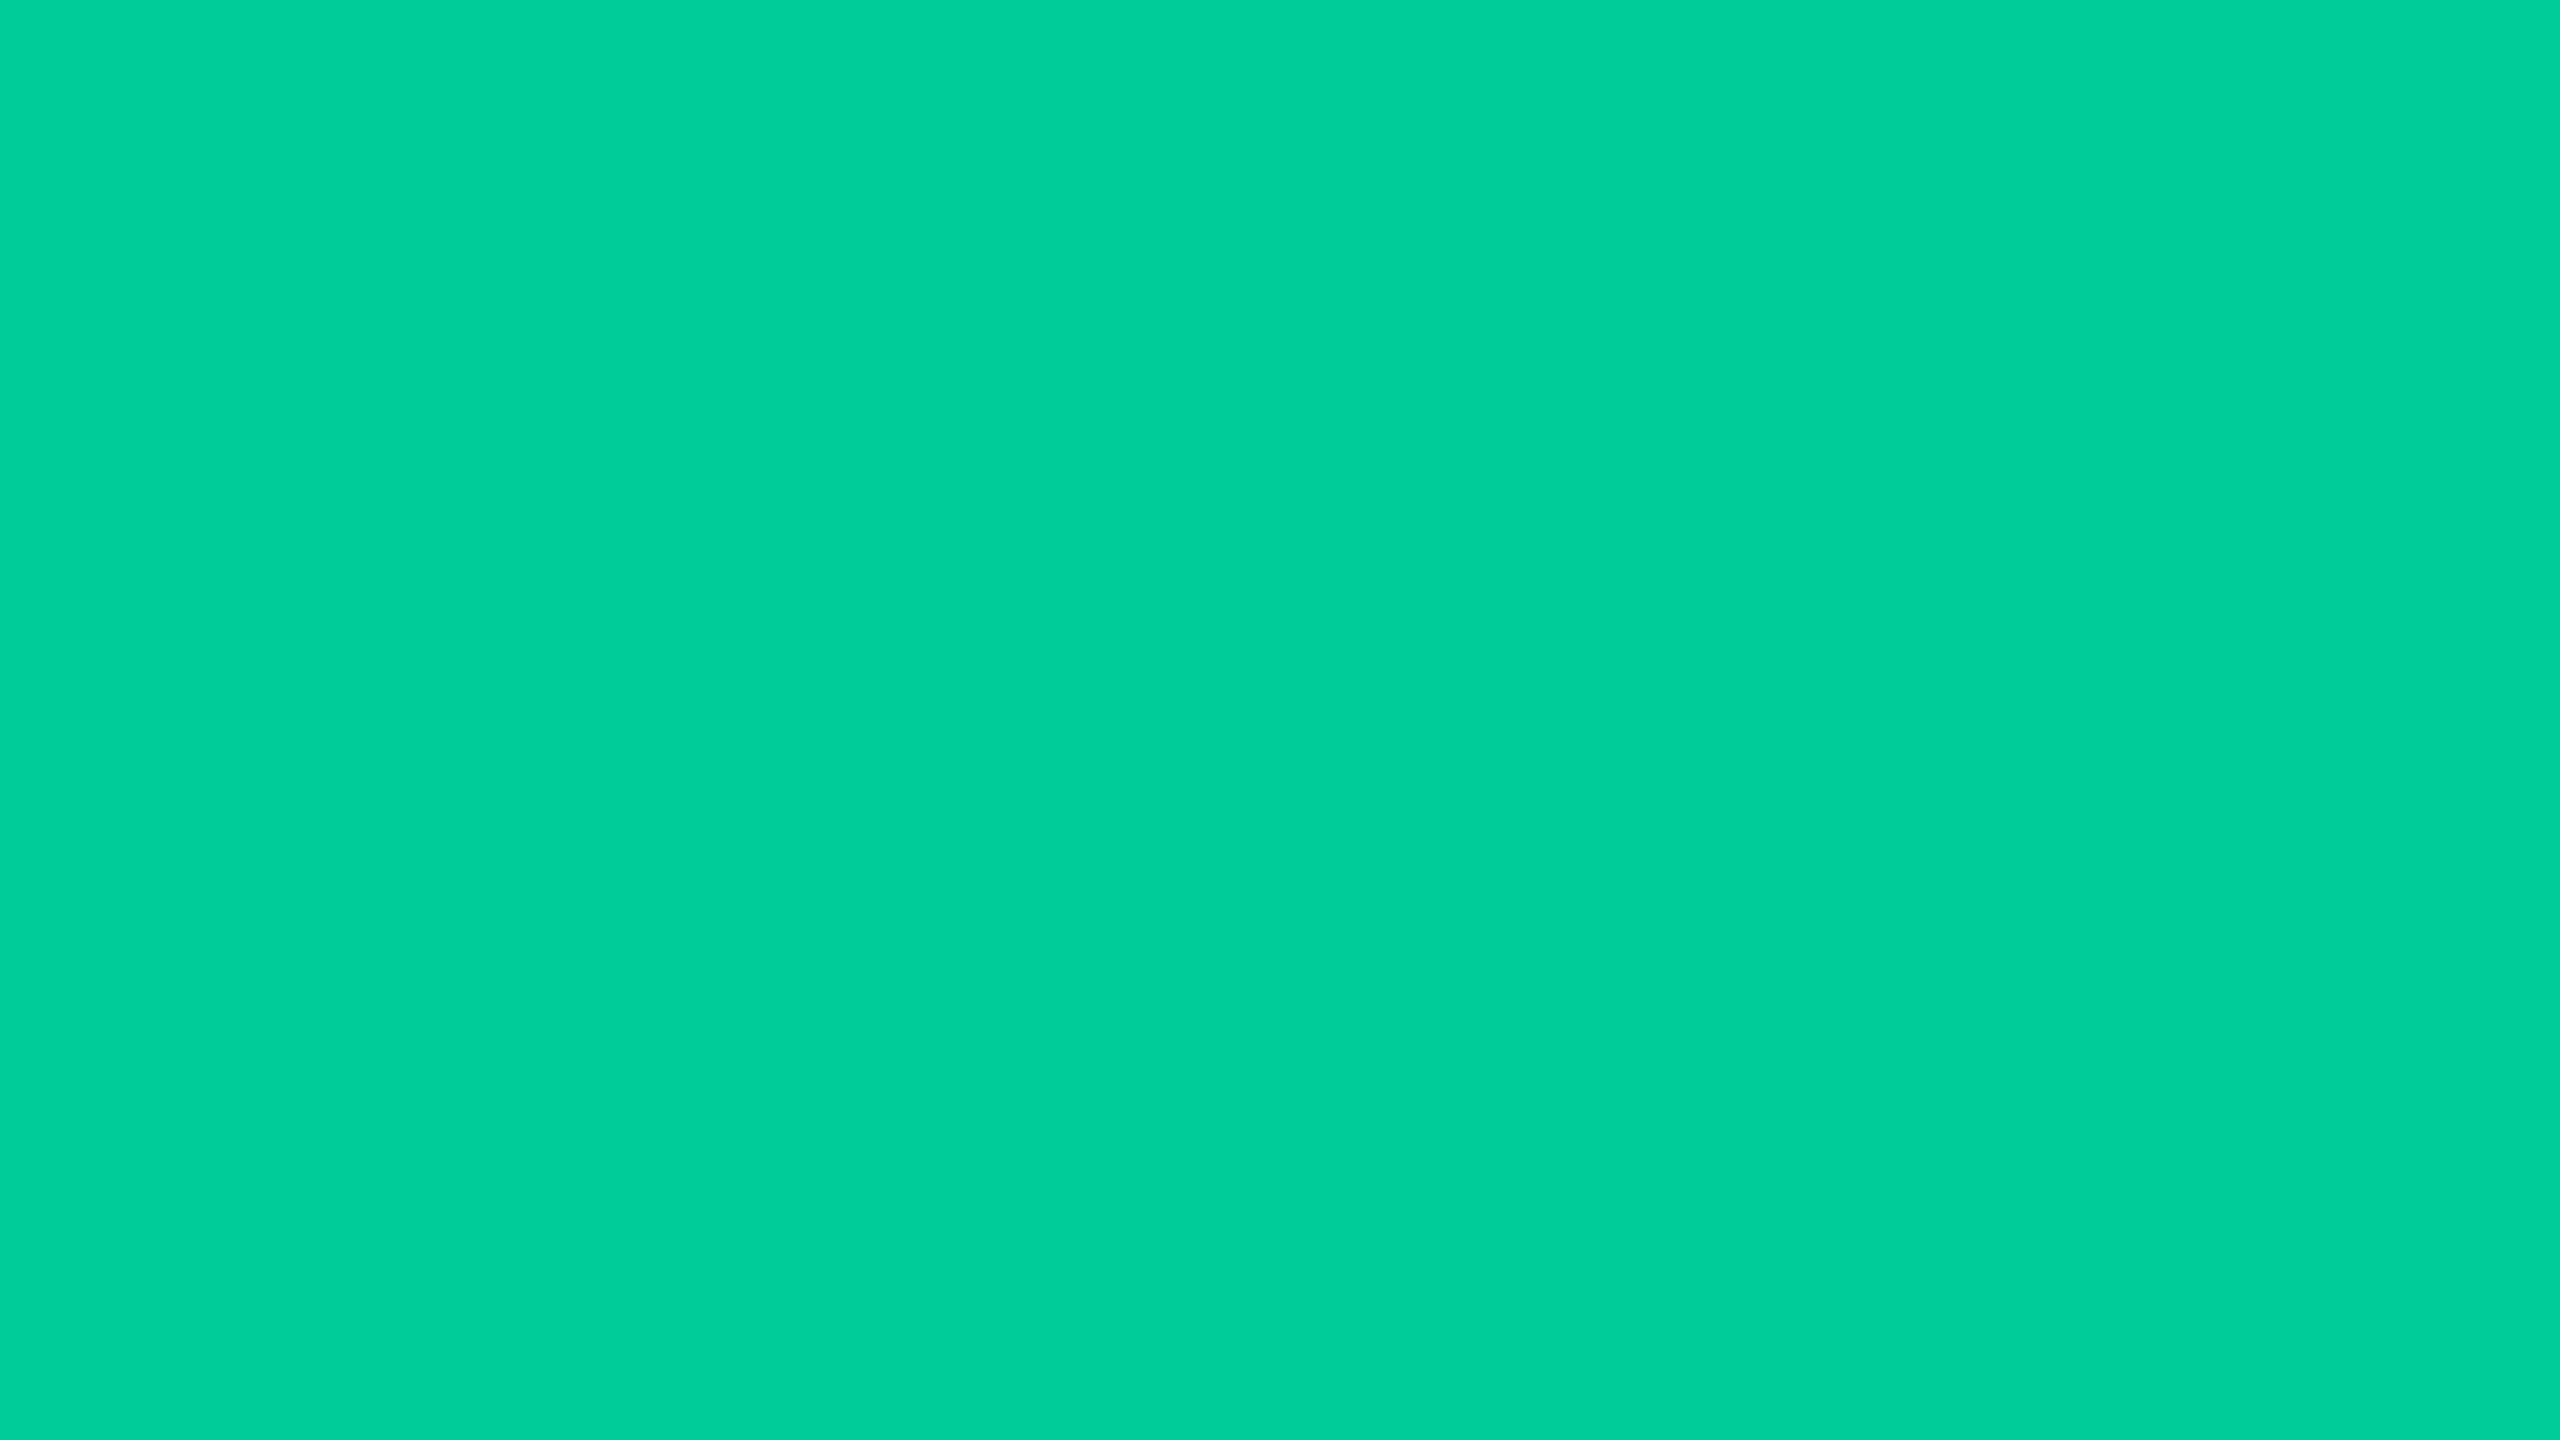 2560x1440 Caribbean Green Solid Color Background